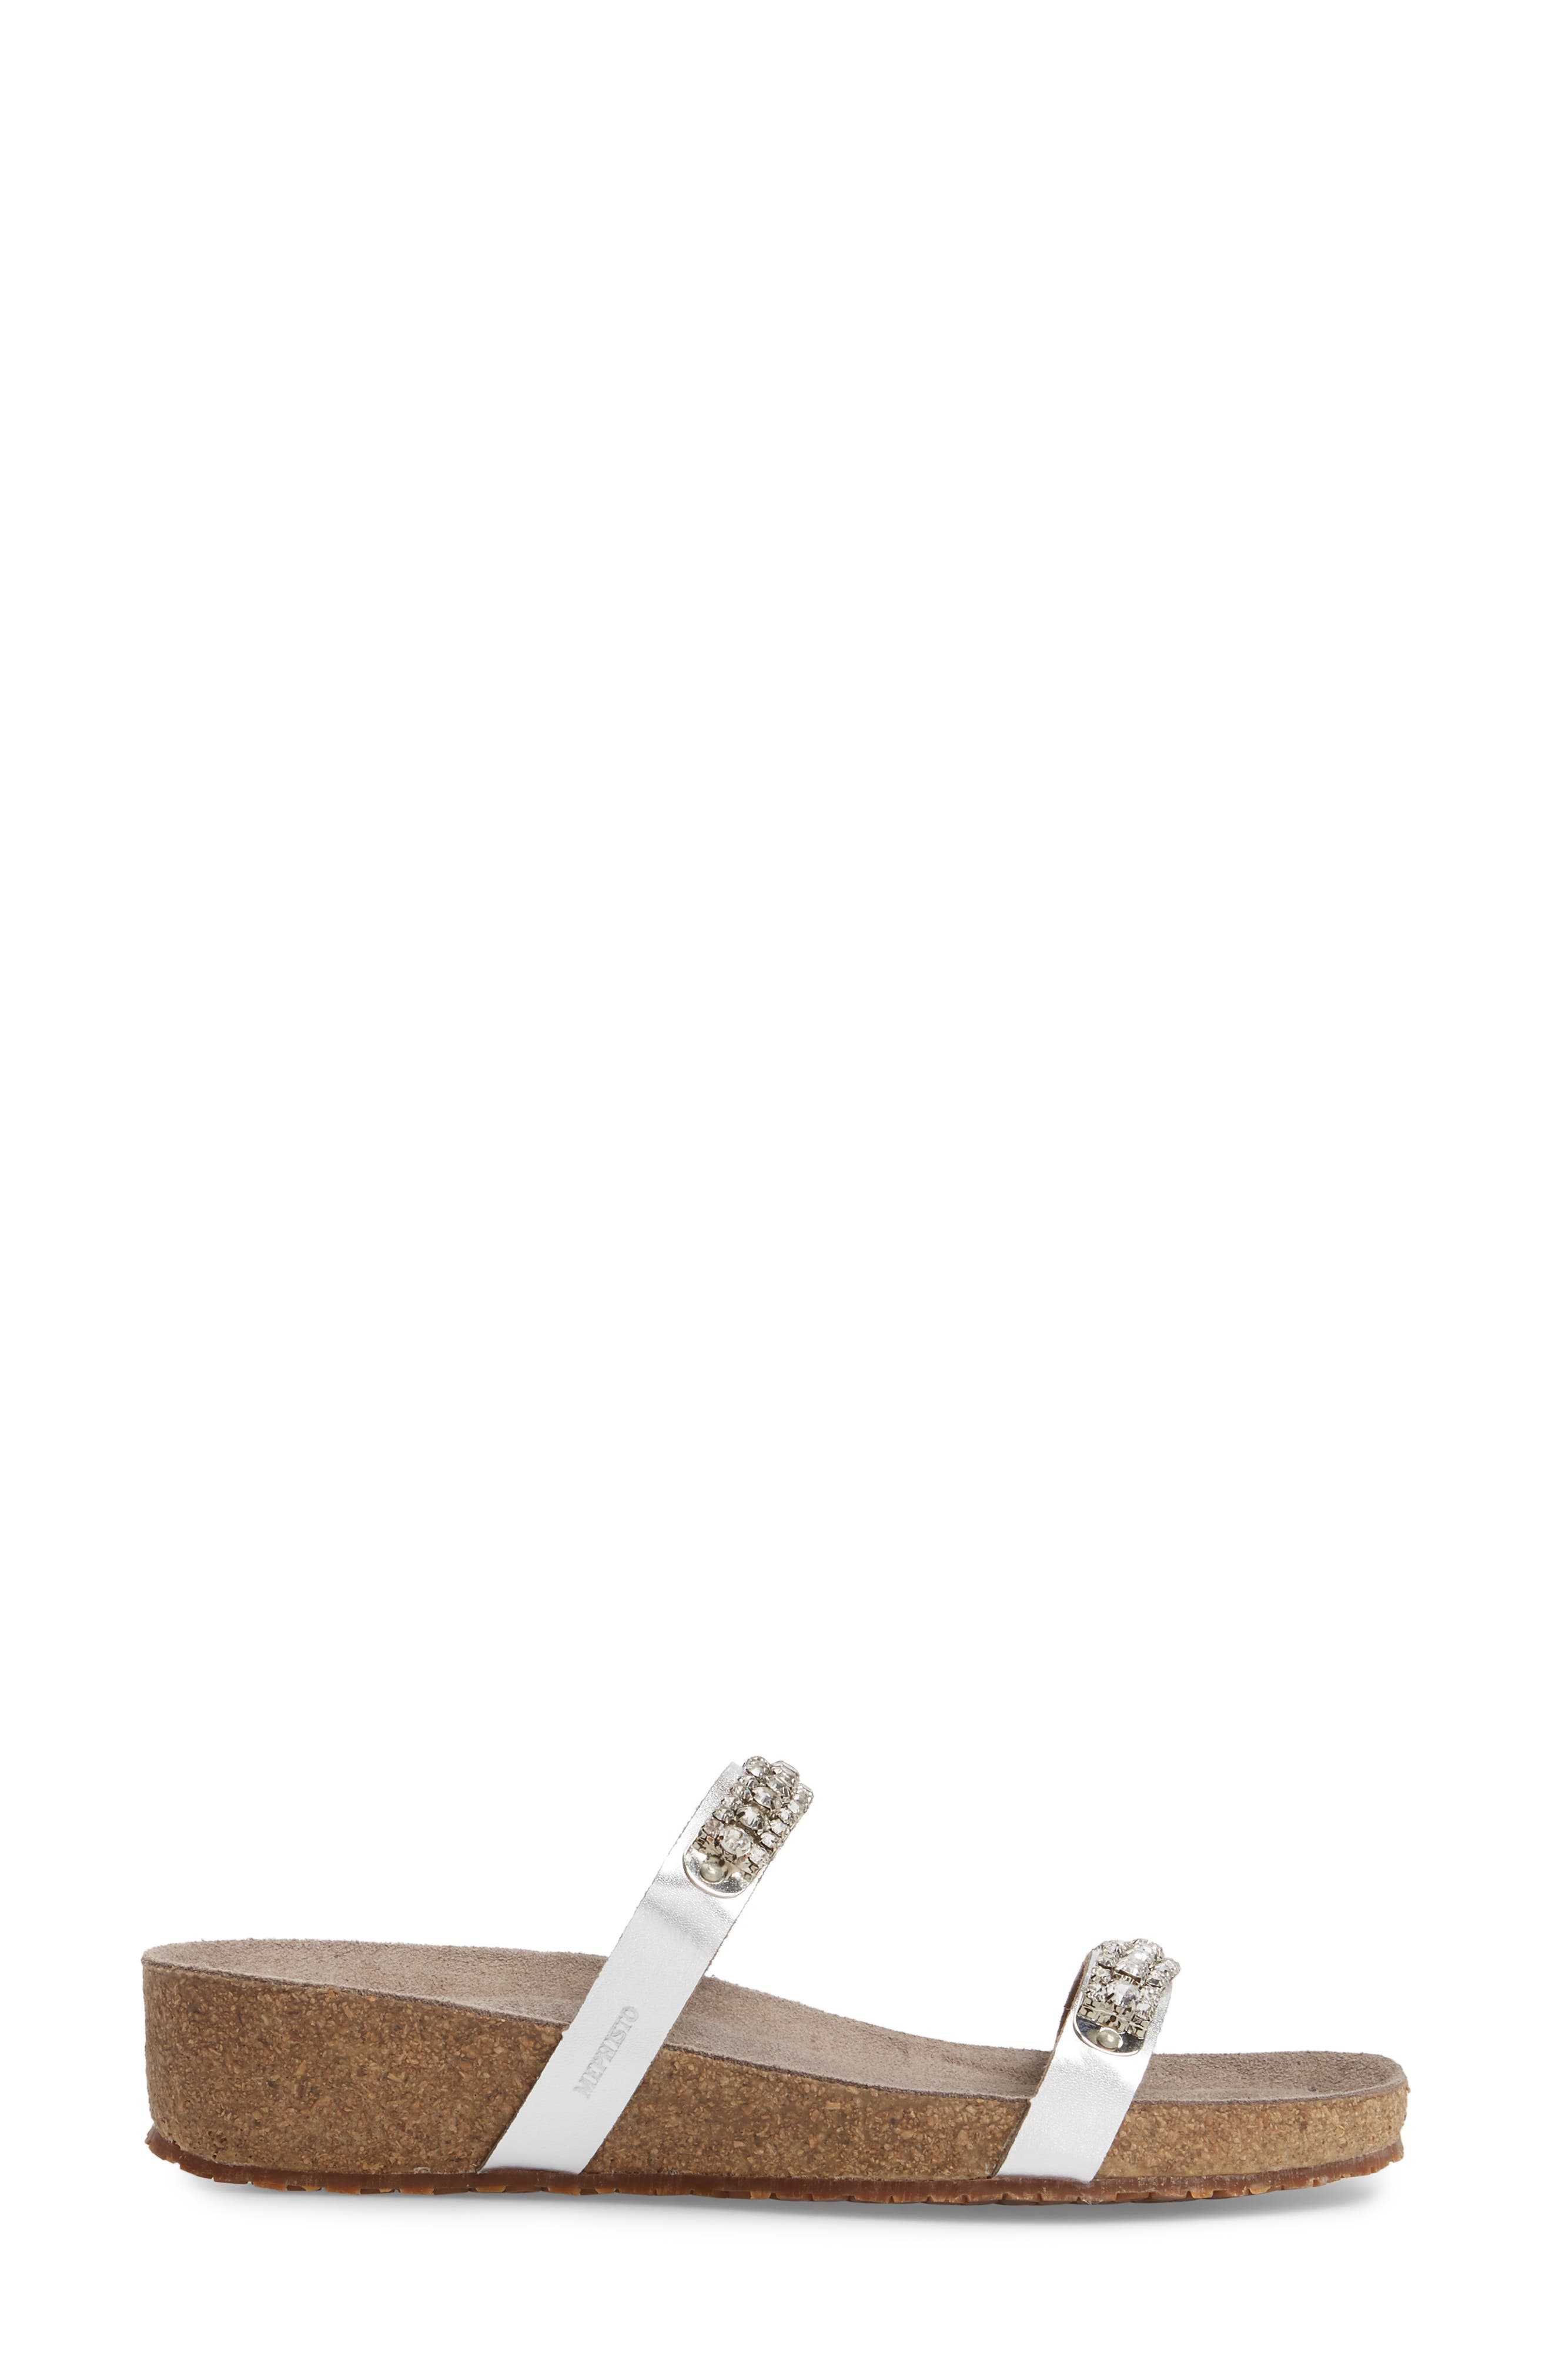 'Ivana' Crystal Embellished Slide Sandal,                             Alternate thumbnail 3, color,                             082